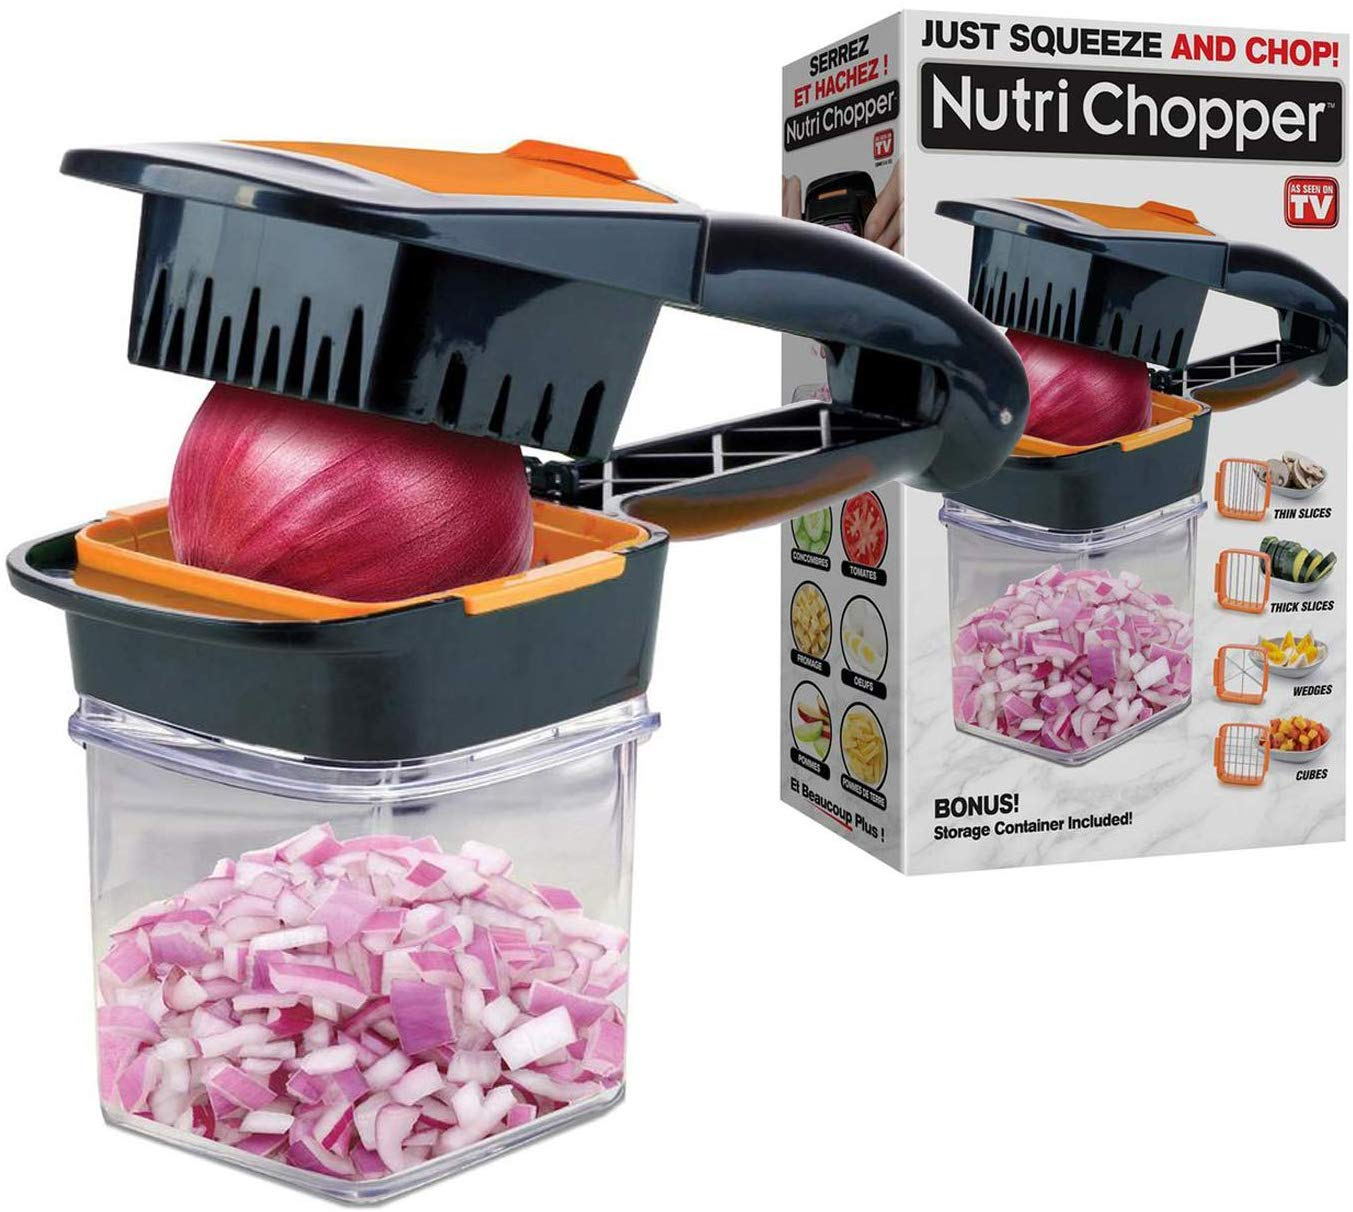 Nutrichopper food chopper